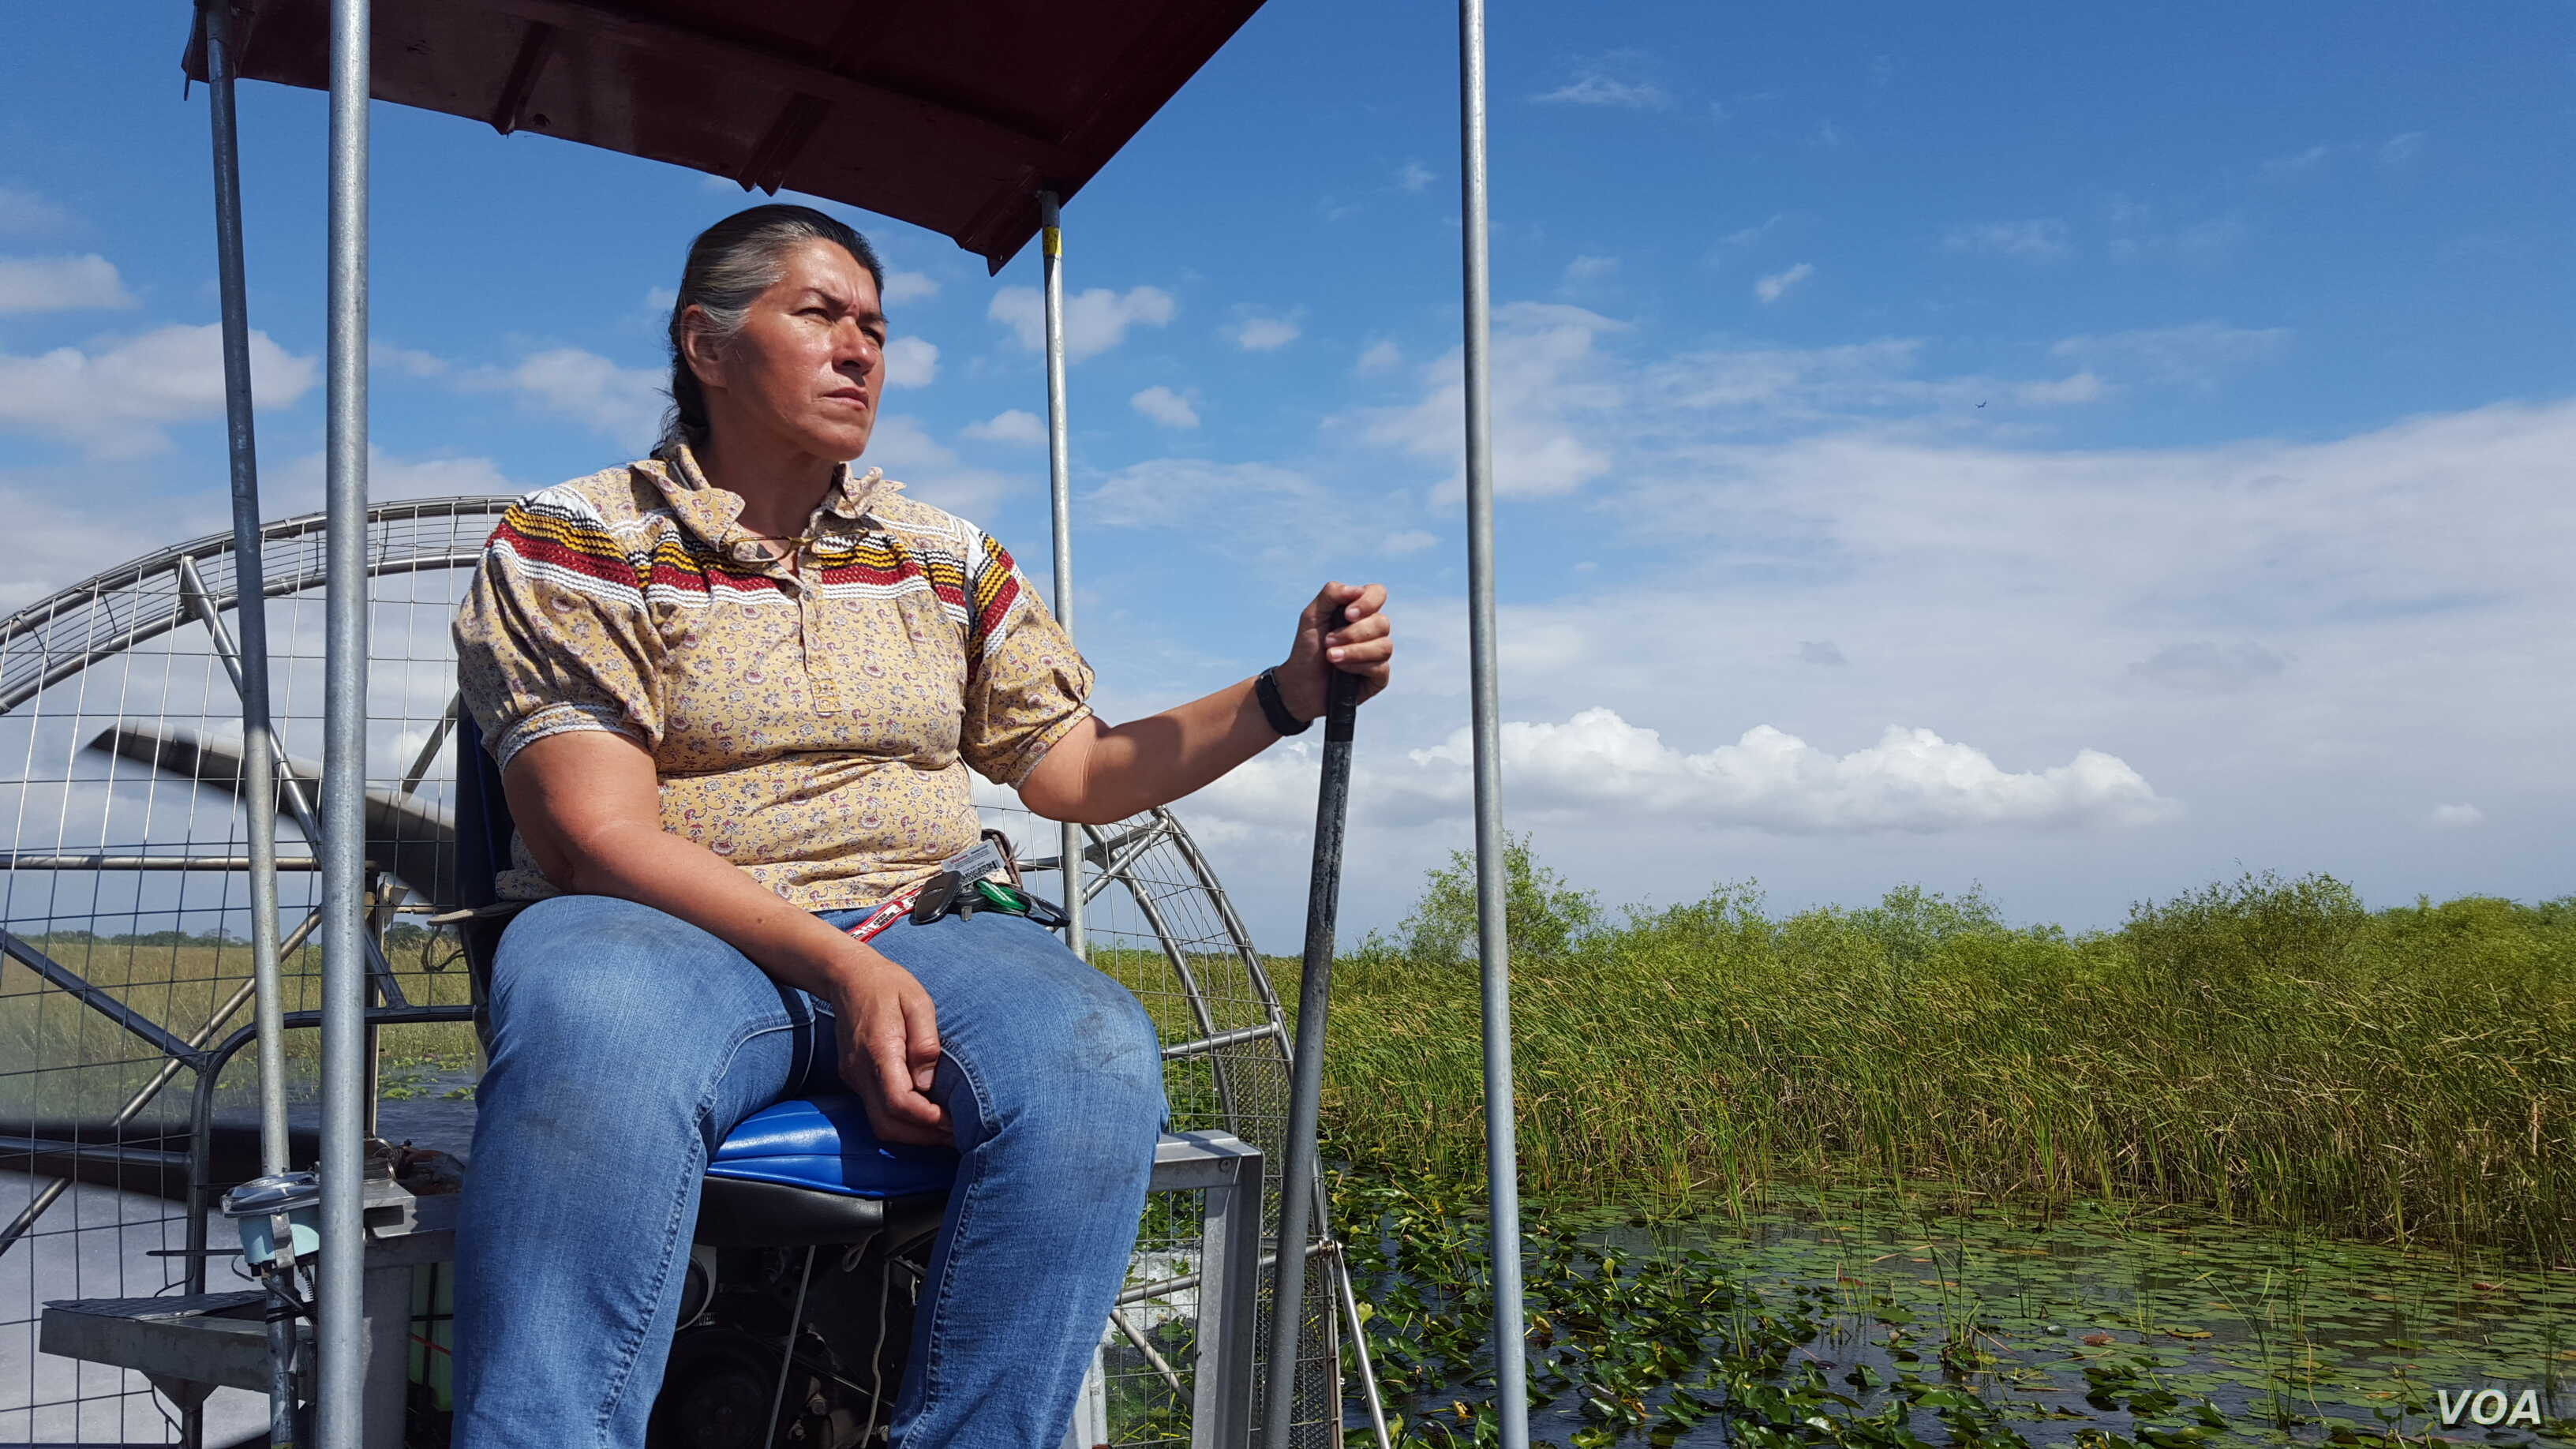 Betty Osceola, a member of the Miccosukee tribe, runs an airboat tour company in the Everglades. (W. Gallo/VOA)